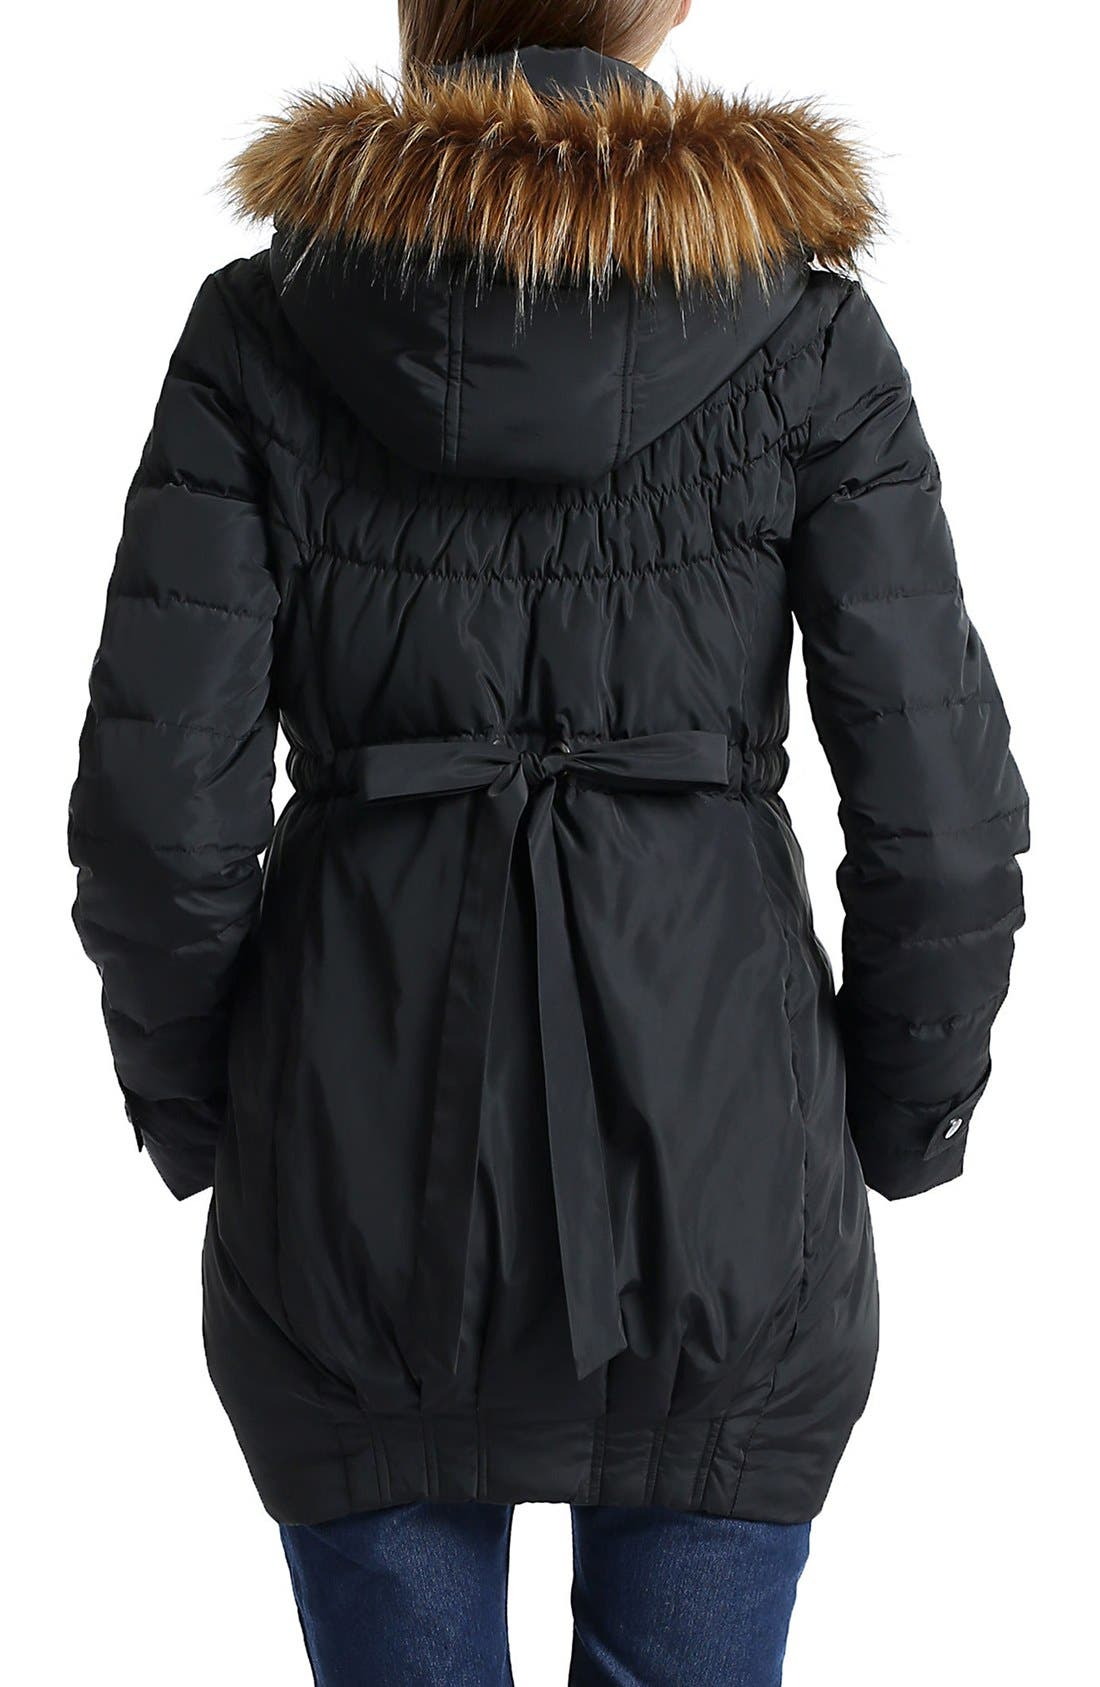 'Arlo' Water Resistant Down Maternity Parka with Baby Carrier Cover Inset,                             Alternate thumbnail 3, color,                             BLACK